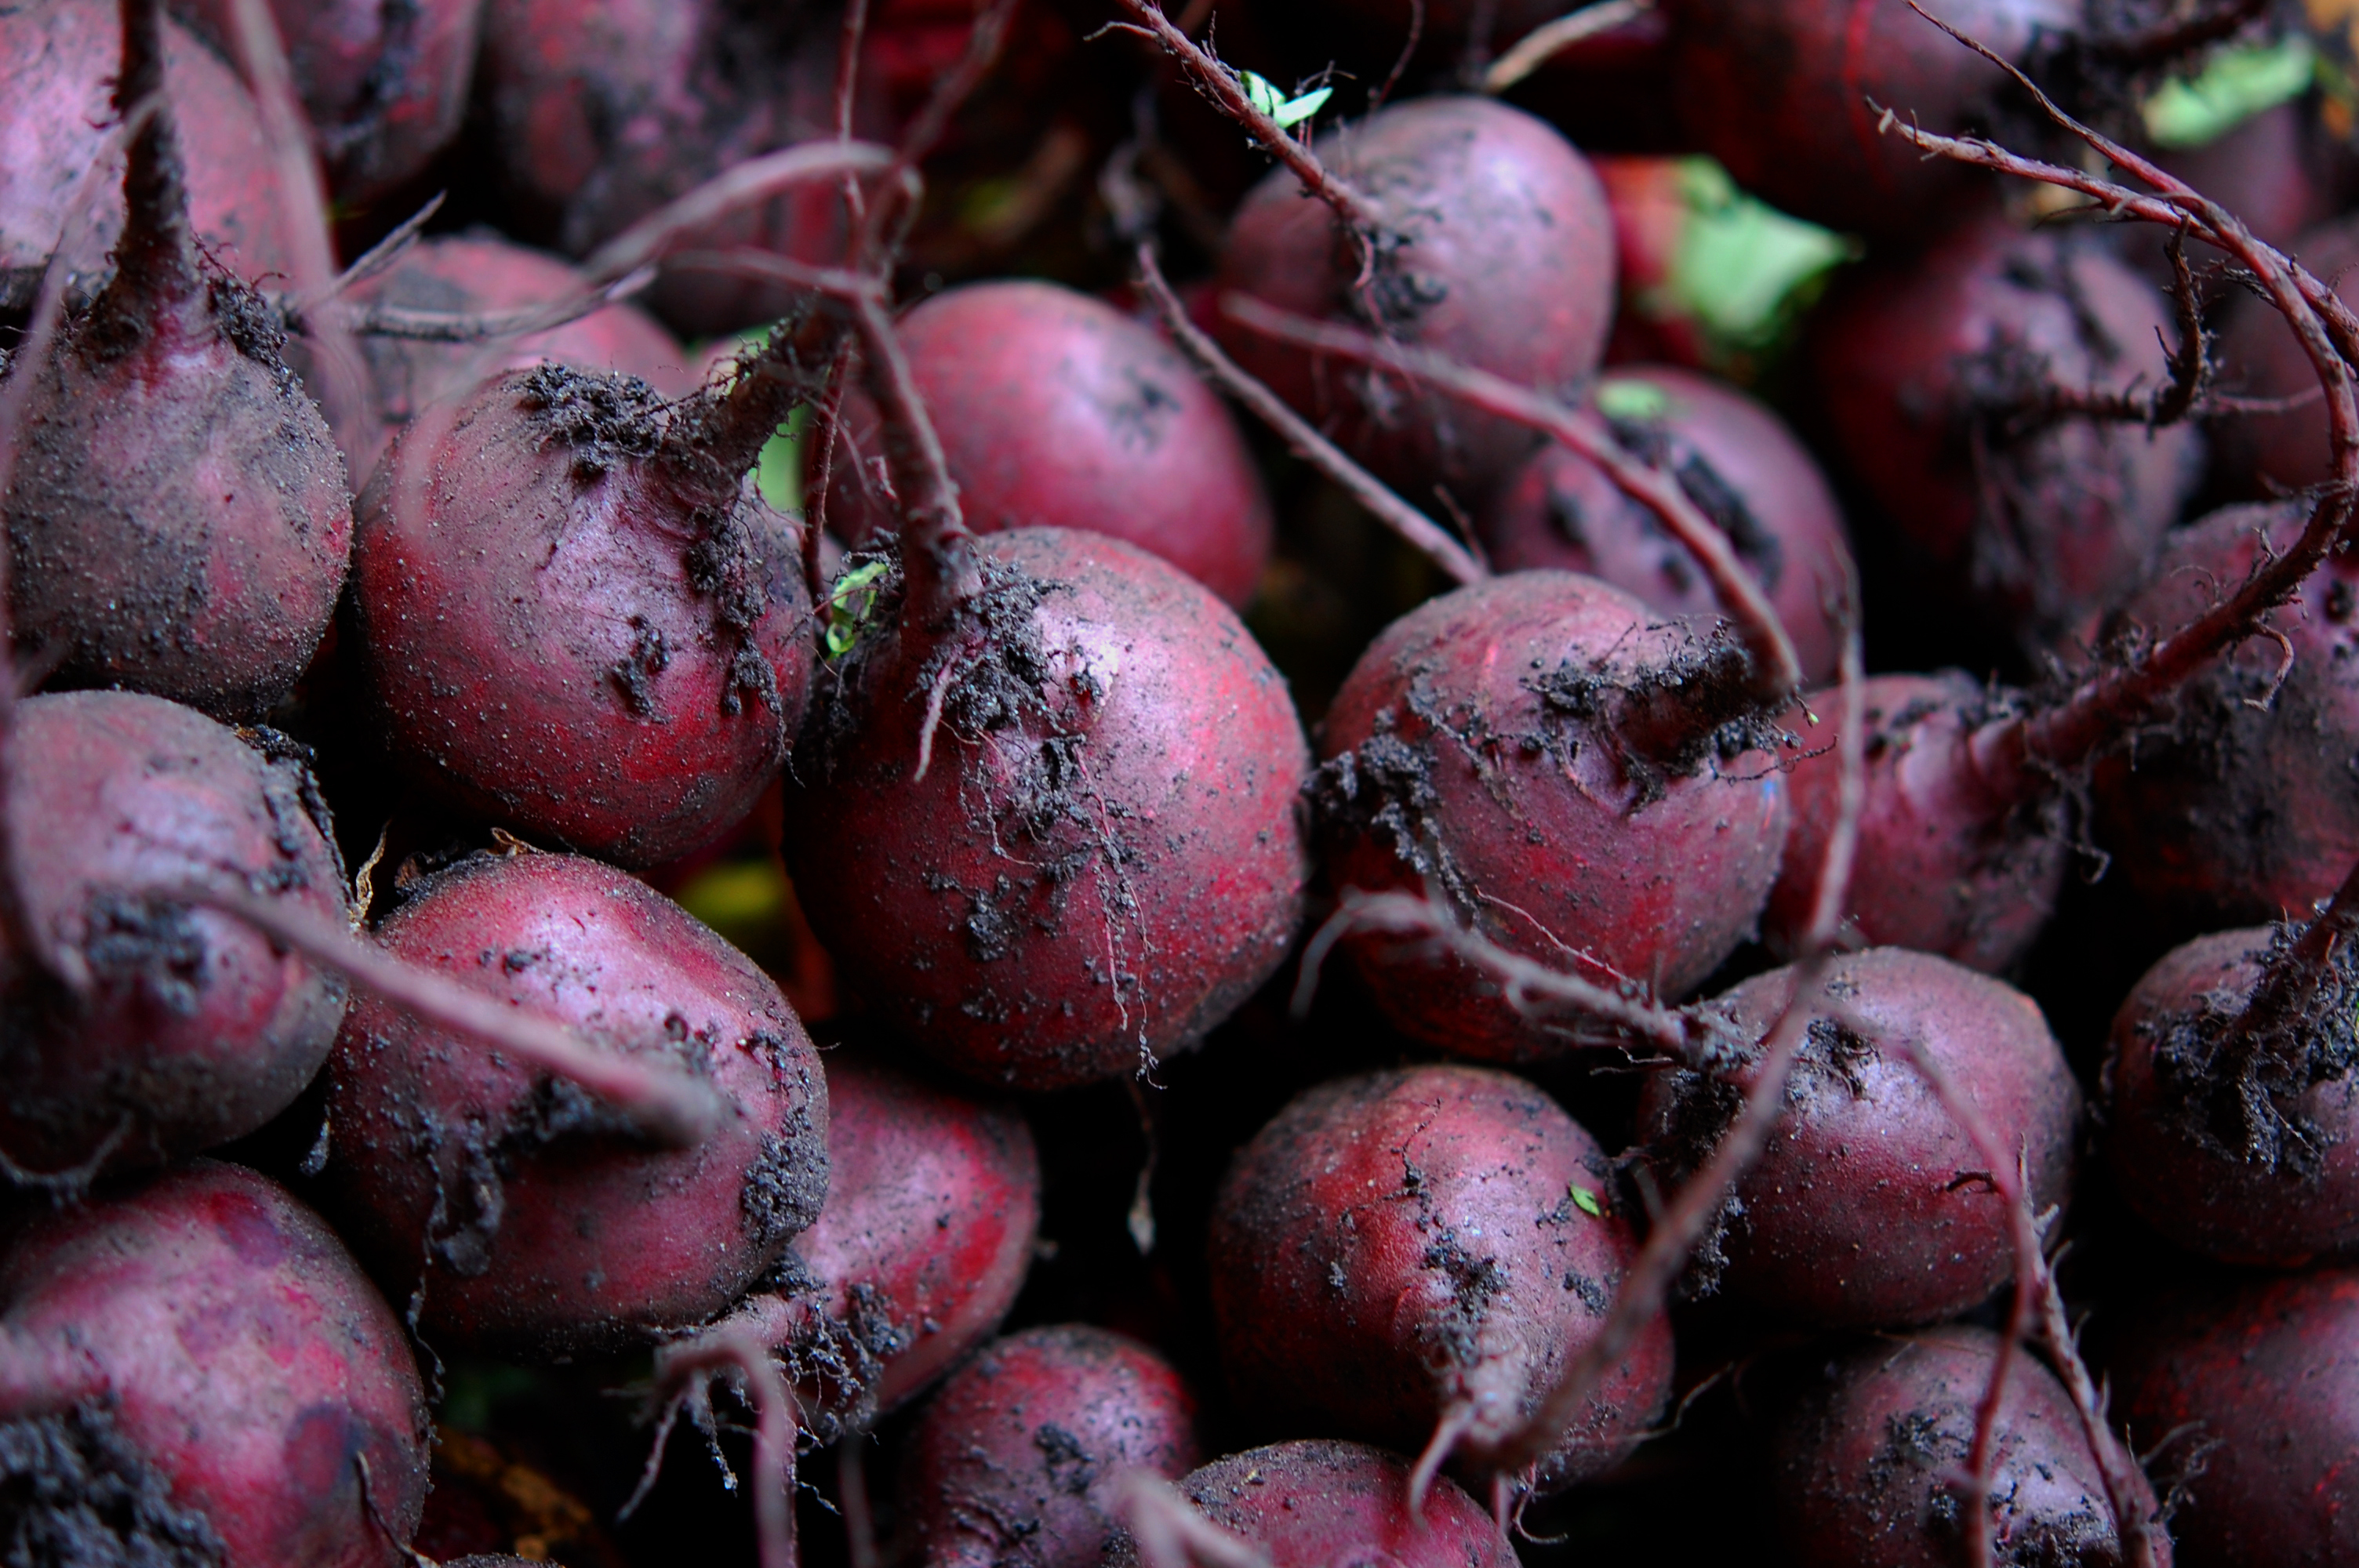 You may think beets are a vegetable for the fall and winter, but they are in season and quite tasty in the summer too.